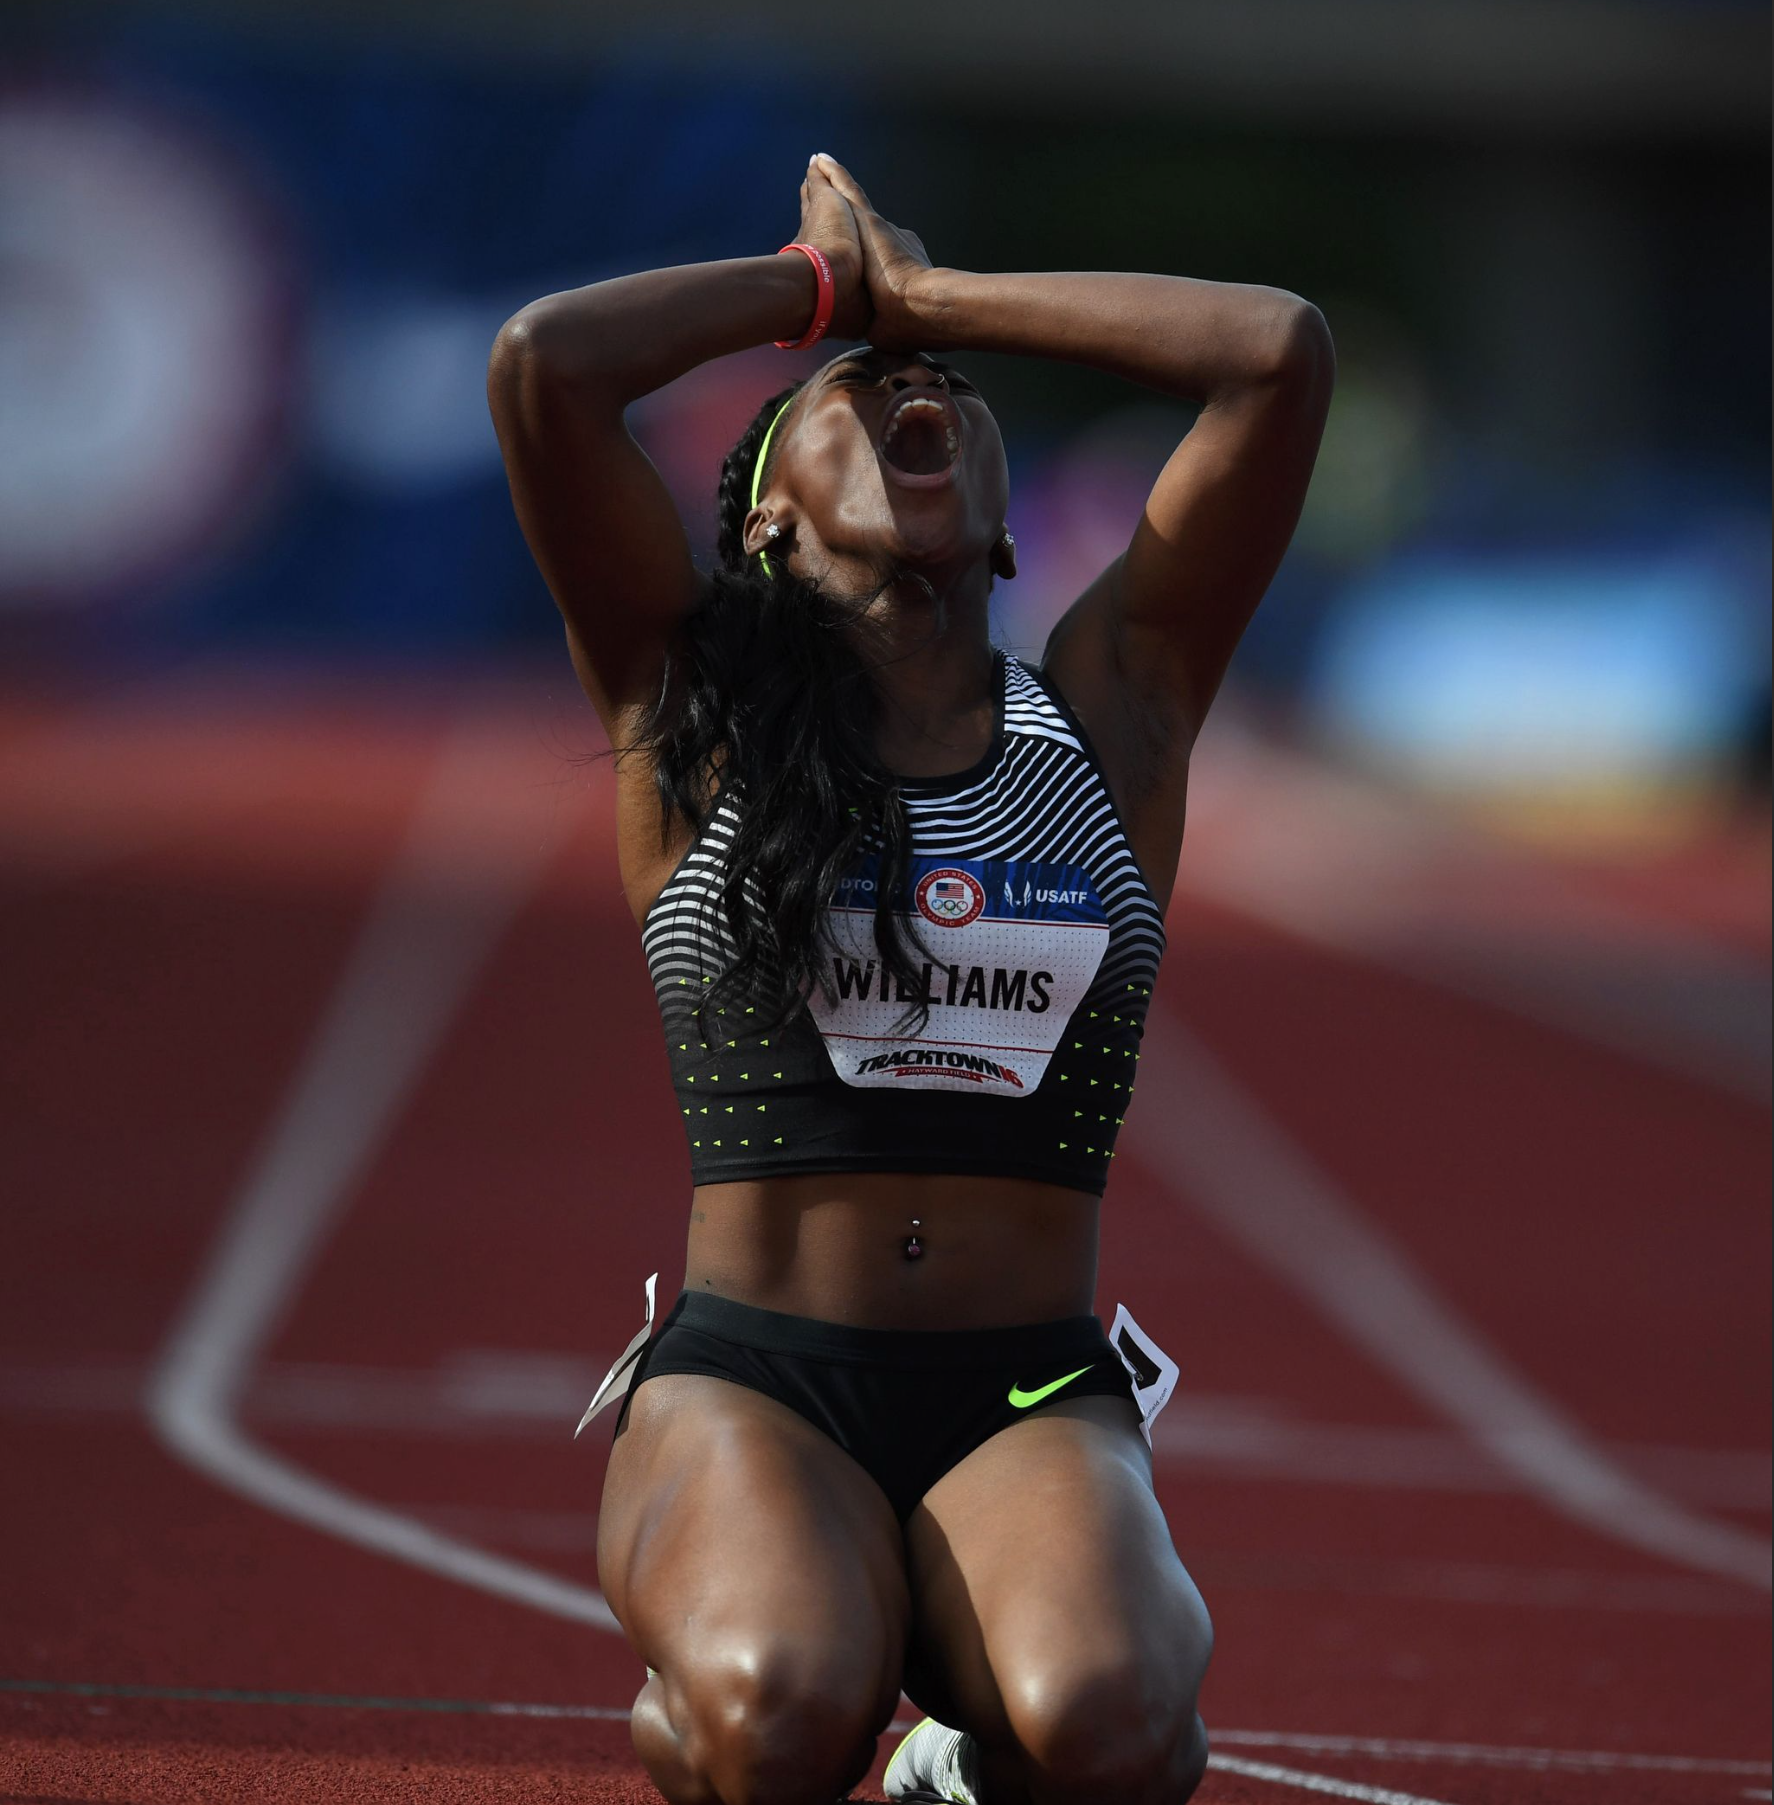 On the other side of the emotion 800-meter final was Christina Williams, who paced third overall to make the Olympic team.